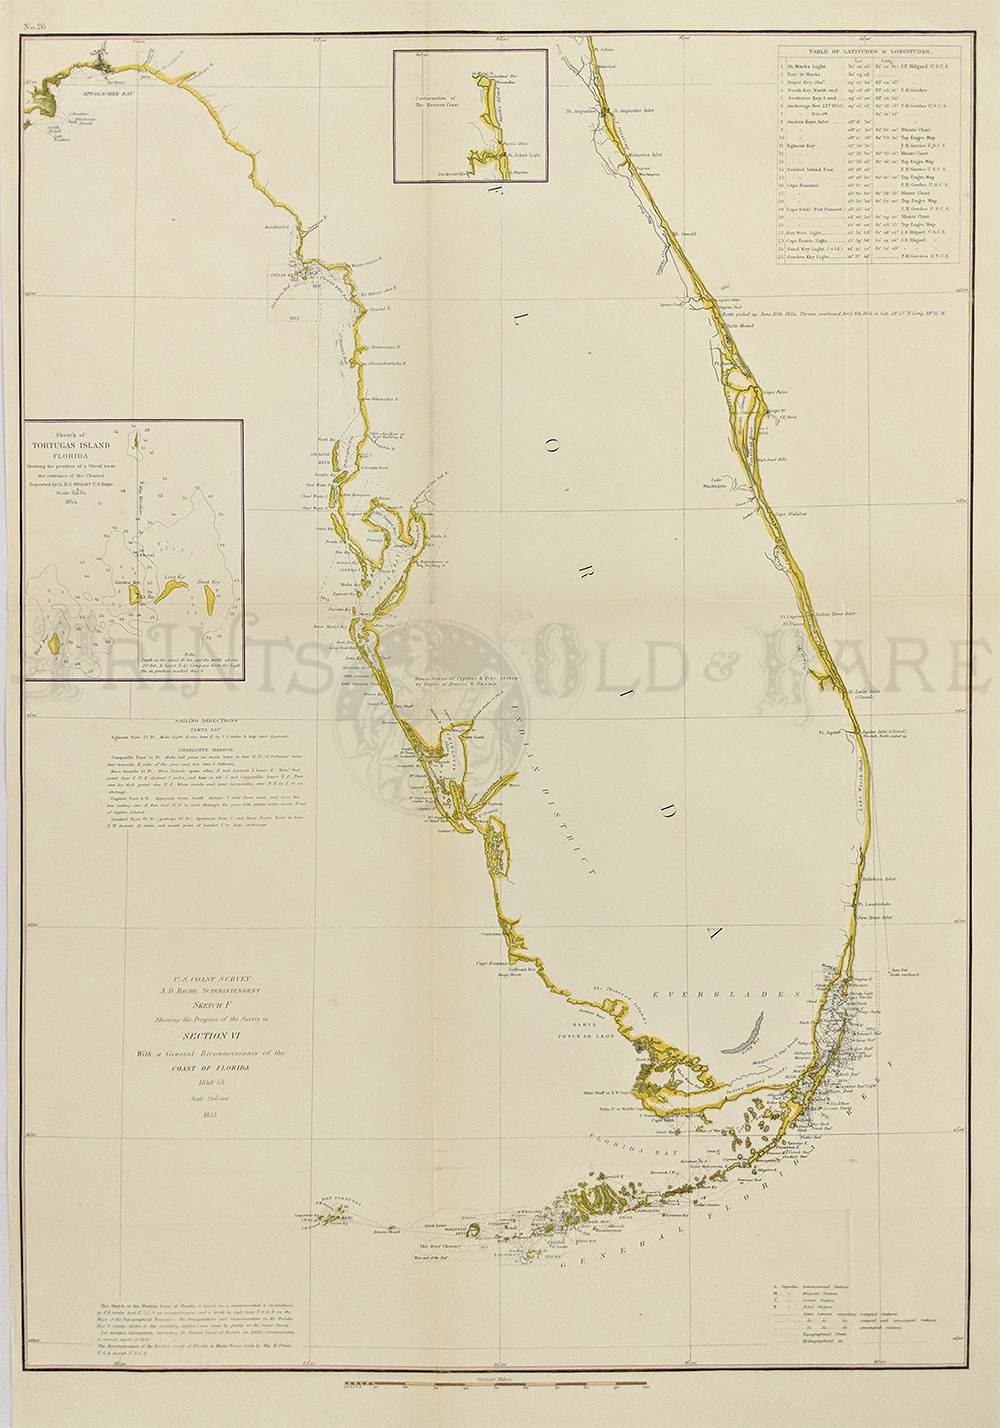 Prints old rare rare antique maps prints 1855 coast survey map of florida with insets of tortugas island and upper eastern coast tampa bay st augustine indian river inlet fort pierce gumiabroncs Images